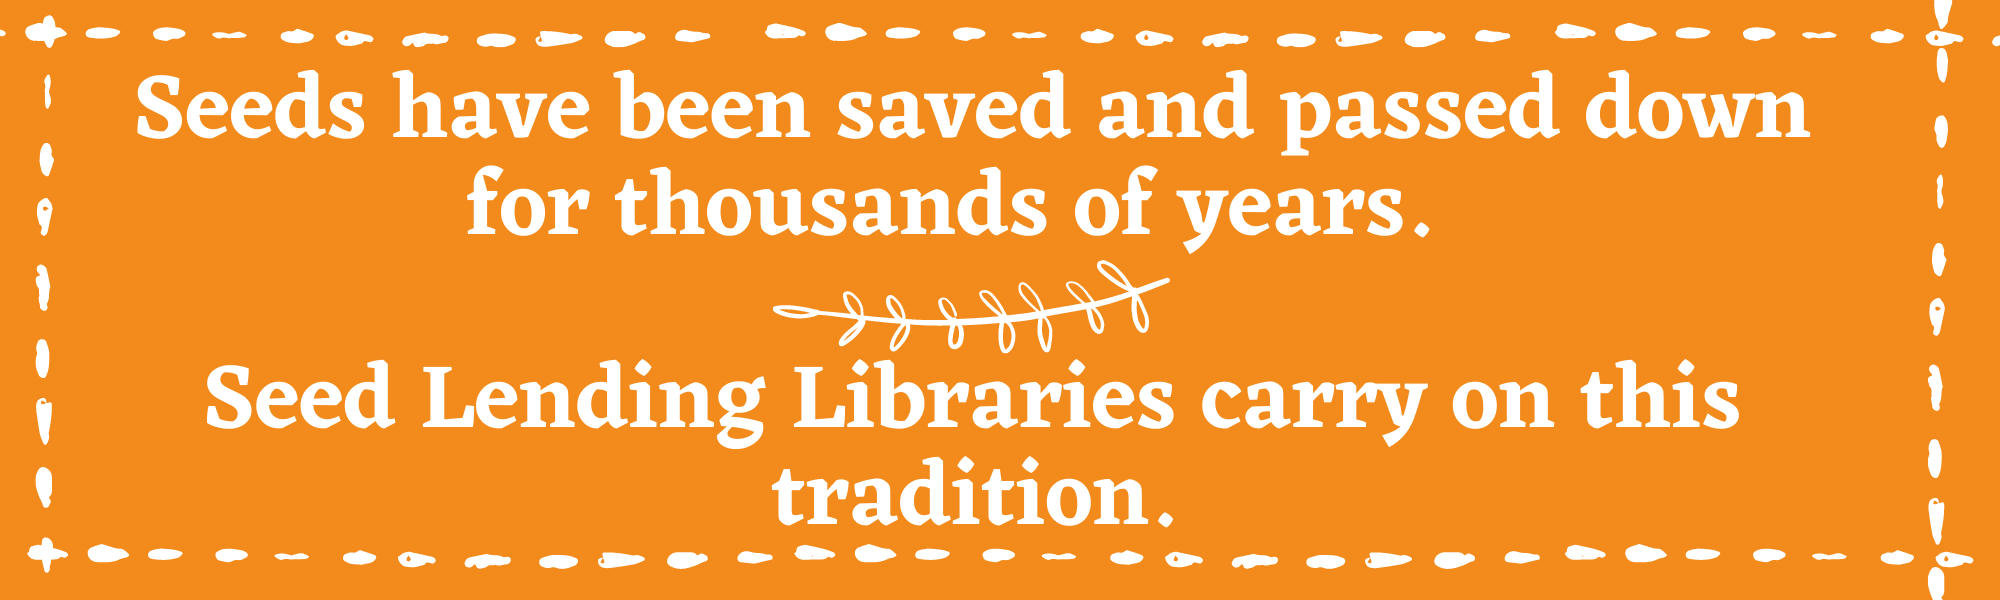 Seeds have been saved and passed down for thousands of years. Seen lending libraries carry on this tradition.